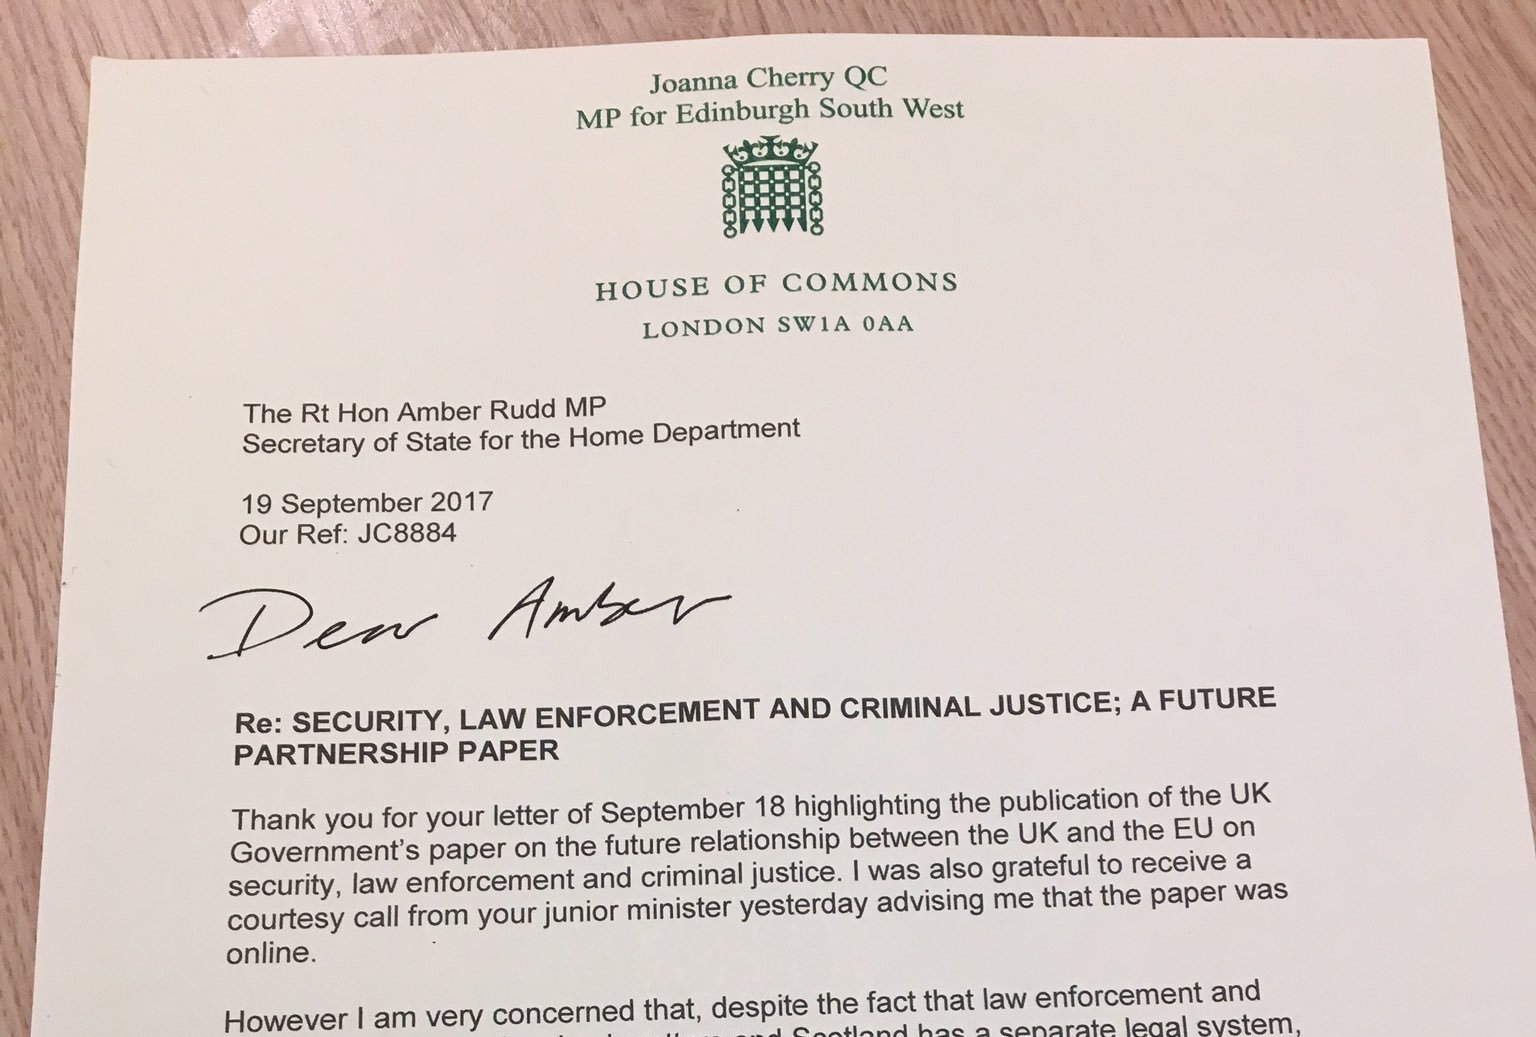 UK Government Partnership Papers